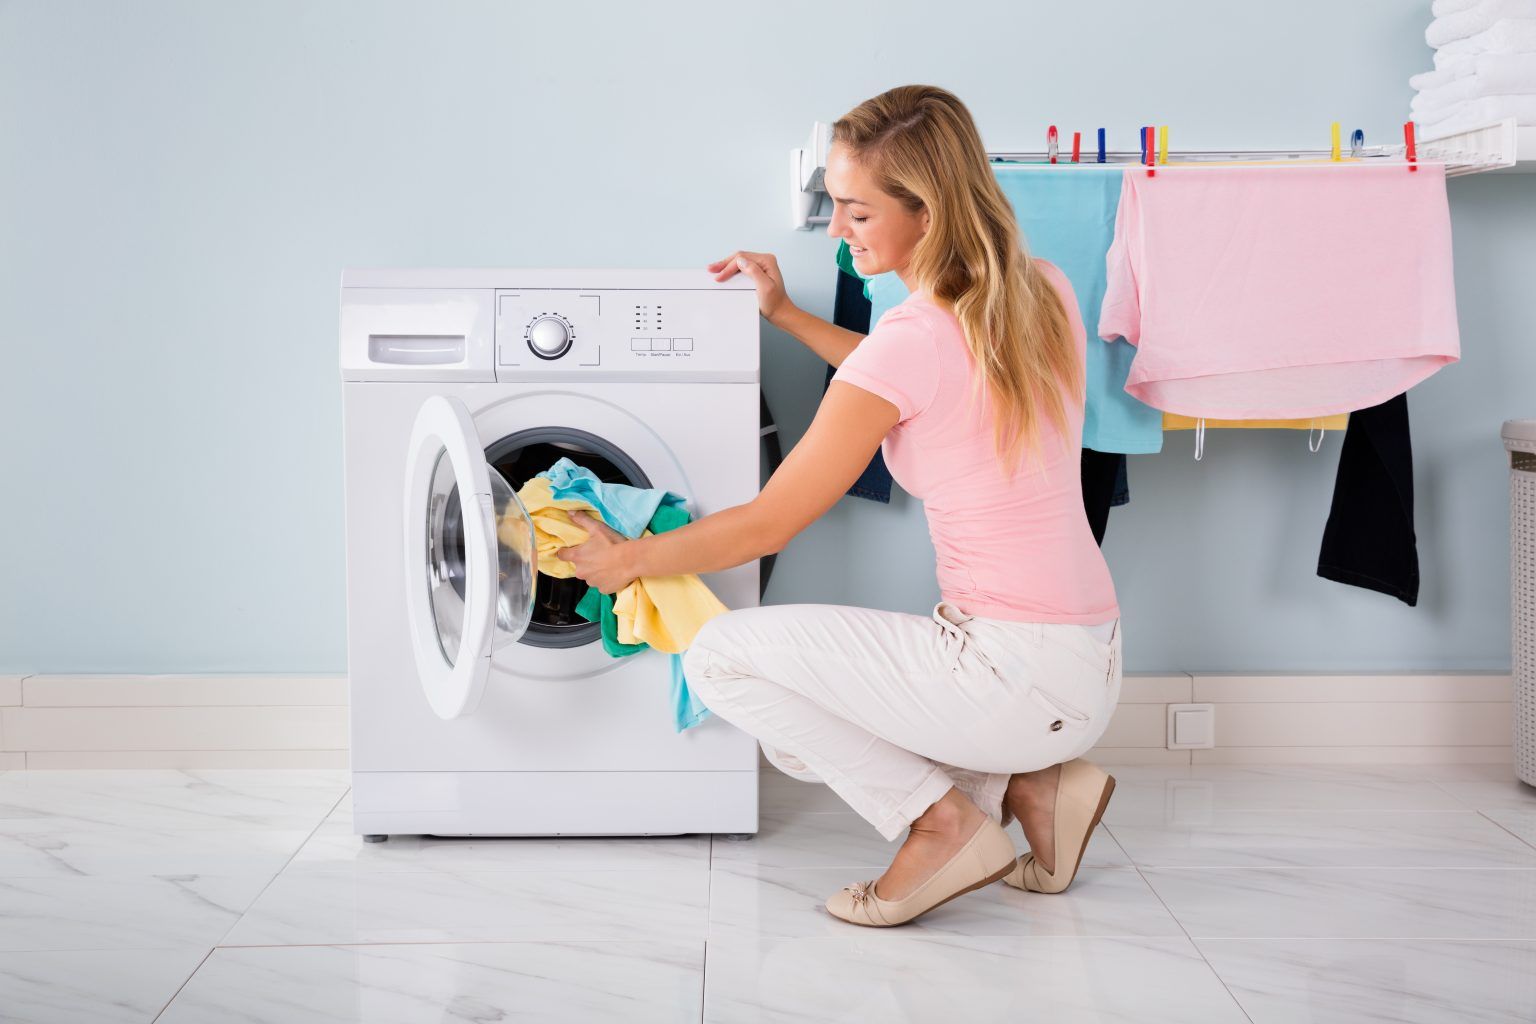 What are the preparations required before putting laundry to washing machine?